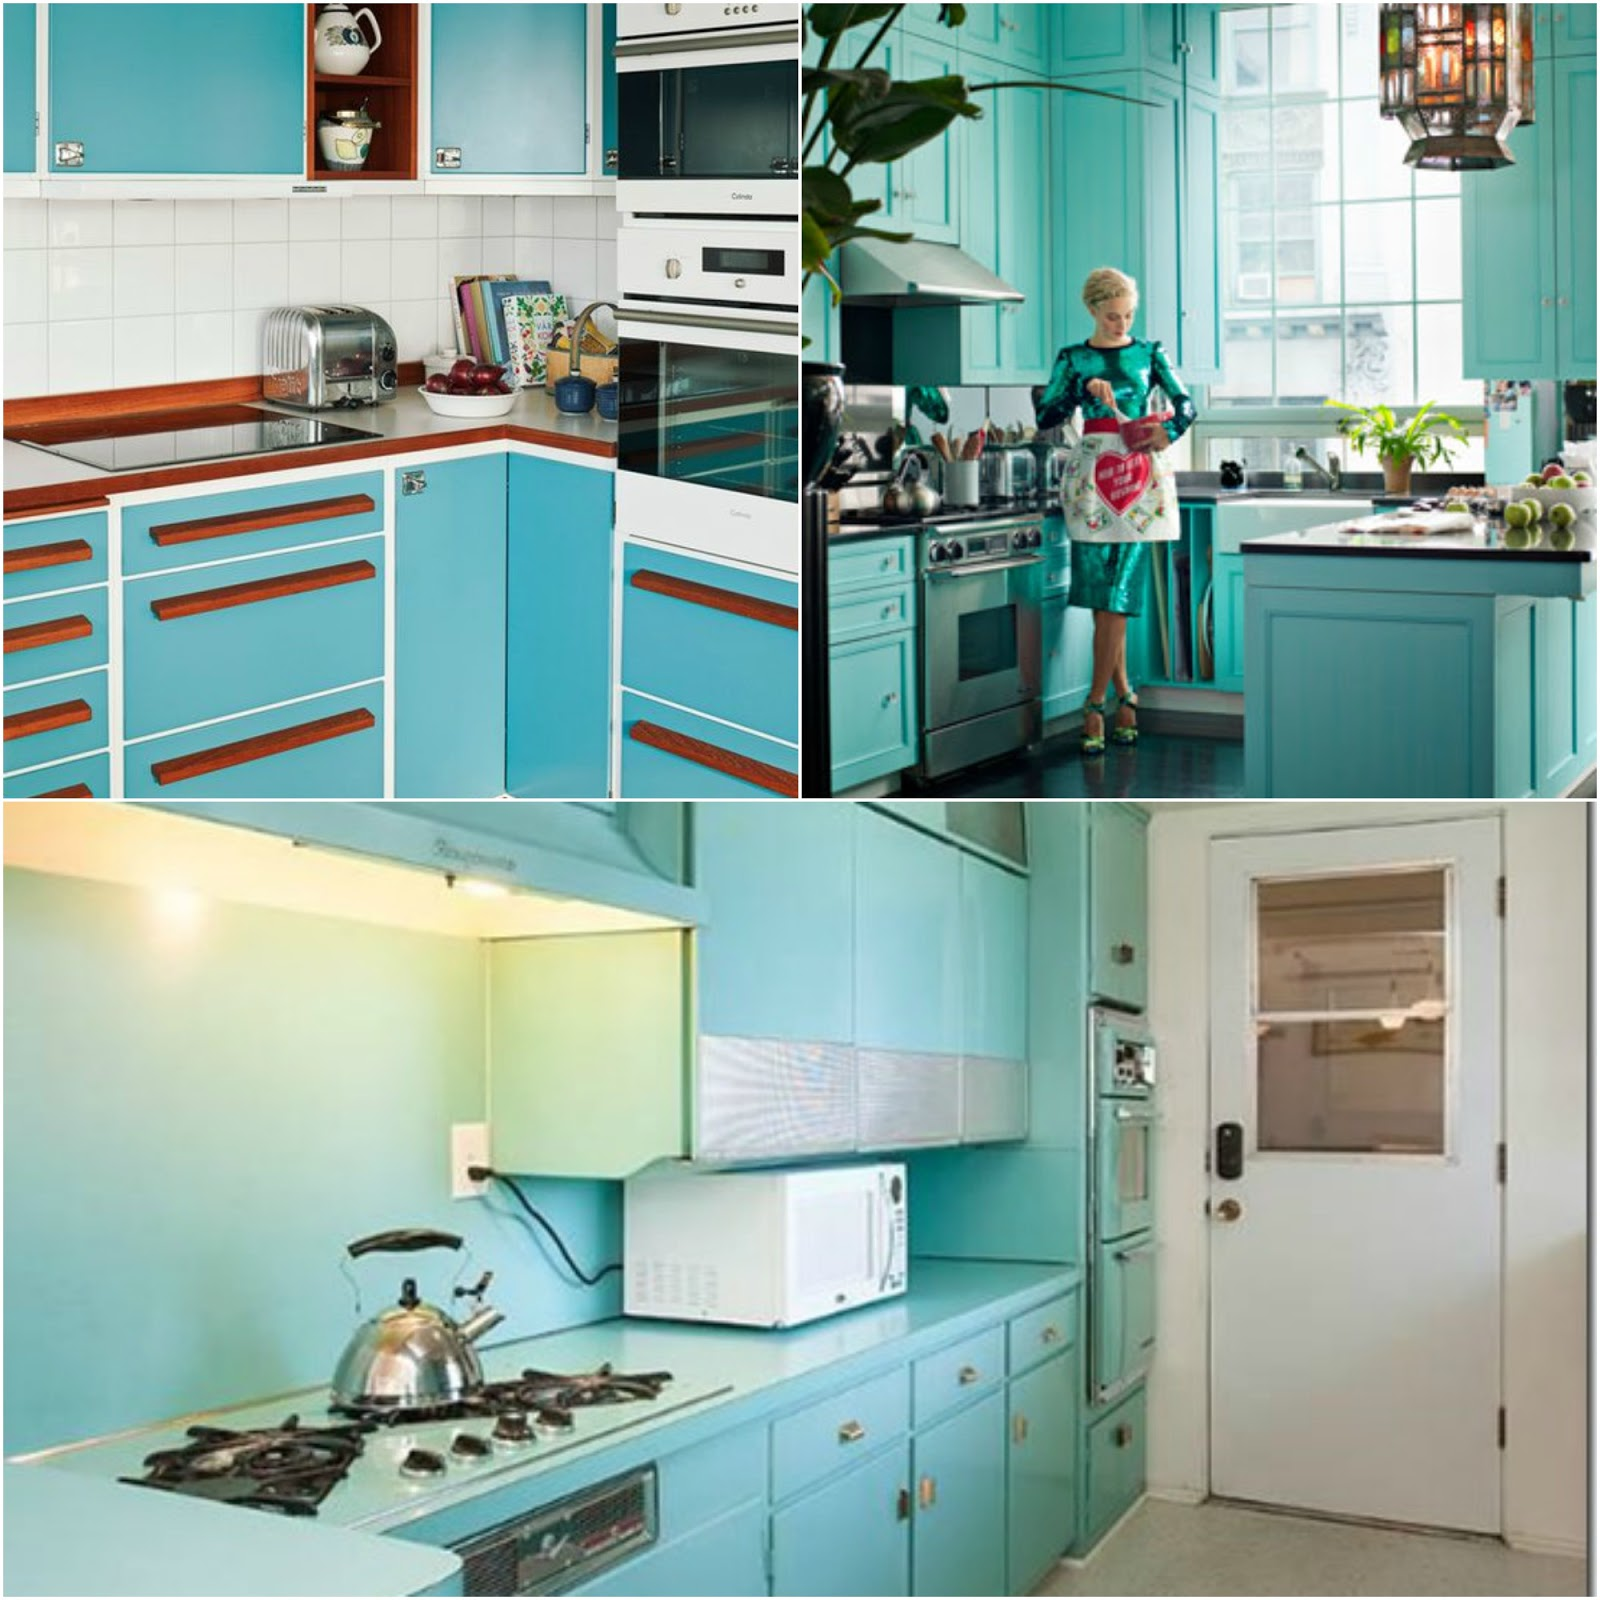 Tasty Turquoise Kitchens | Dans le Lakehouse on turquoise kitchen color ideas, turquoise retro furniture, red retro kitchen ideas, turquoise home decor ideas,